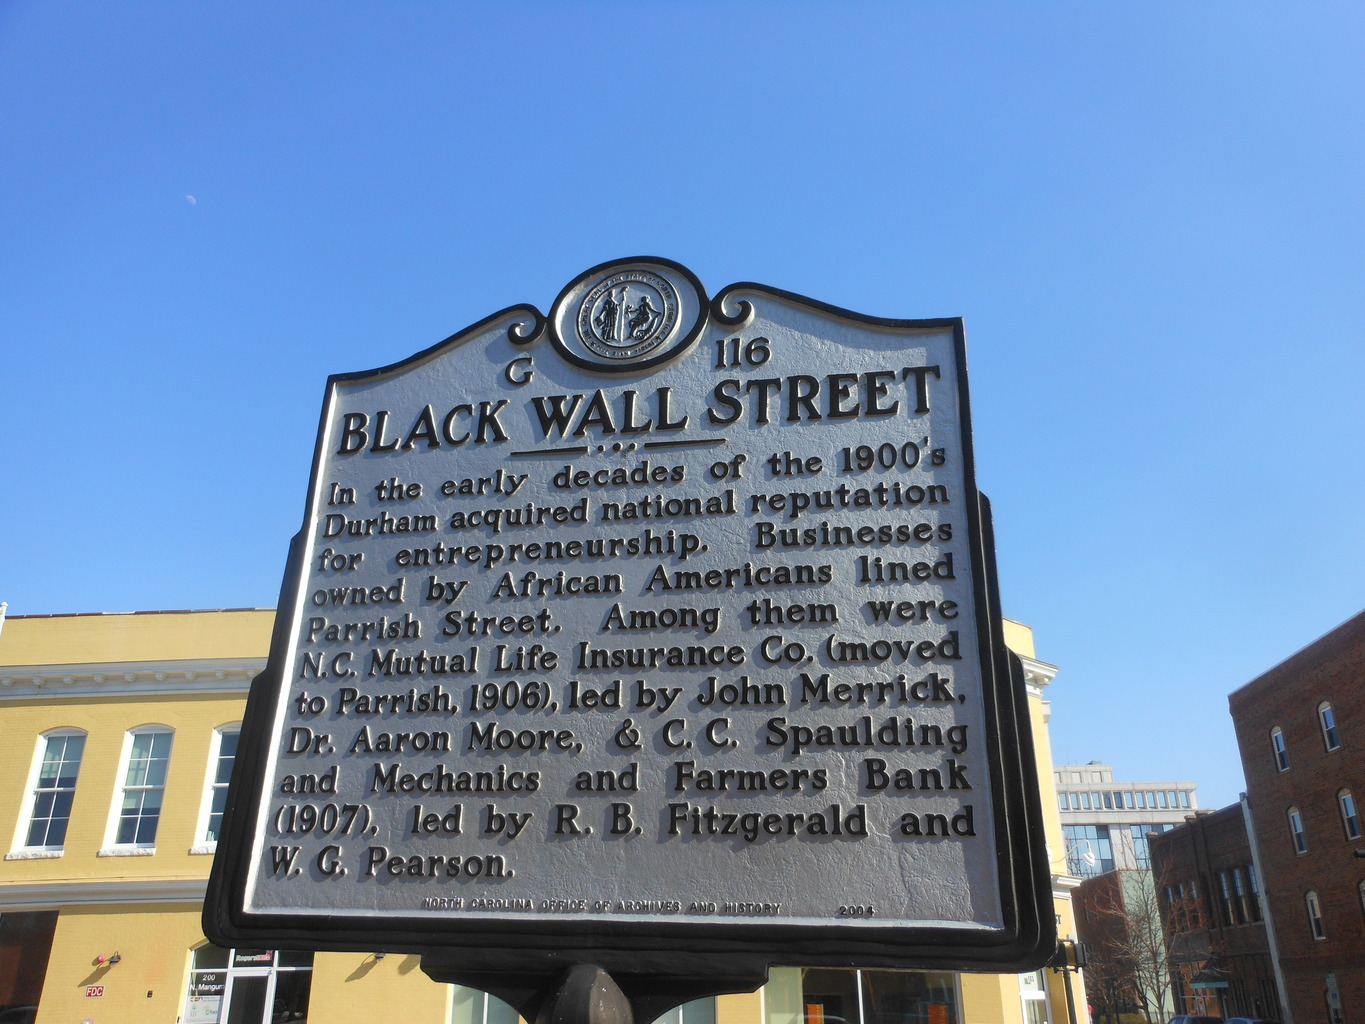 Located on Parrish St., Black Wall Street became the standard for Black achievement in the early 1900s.